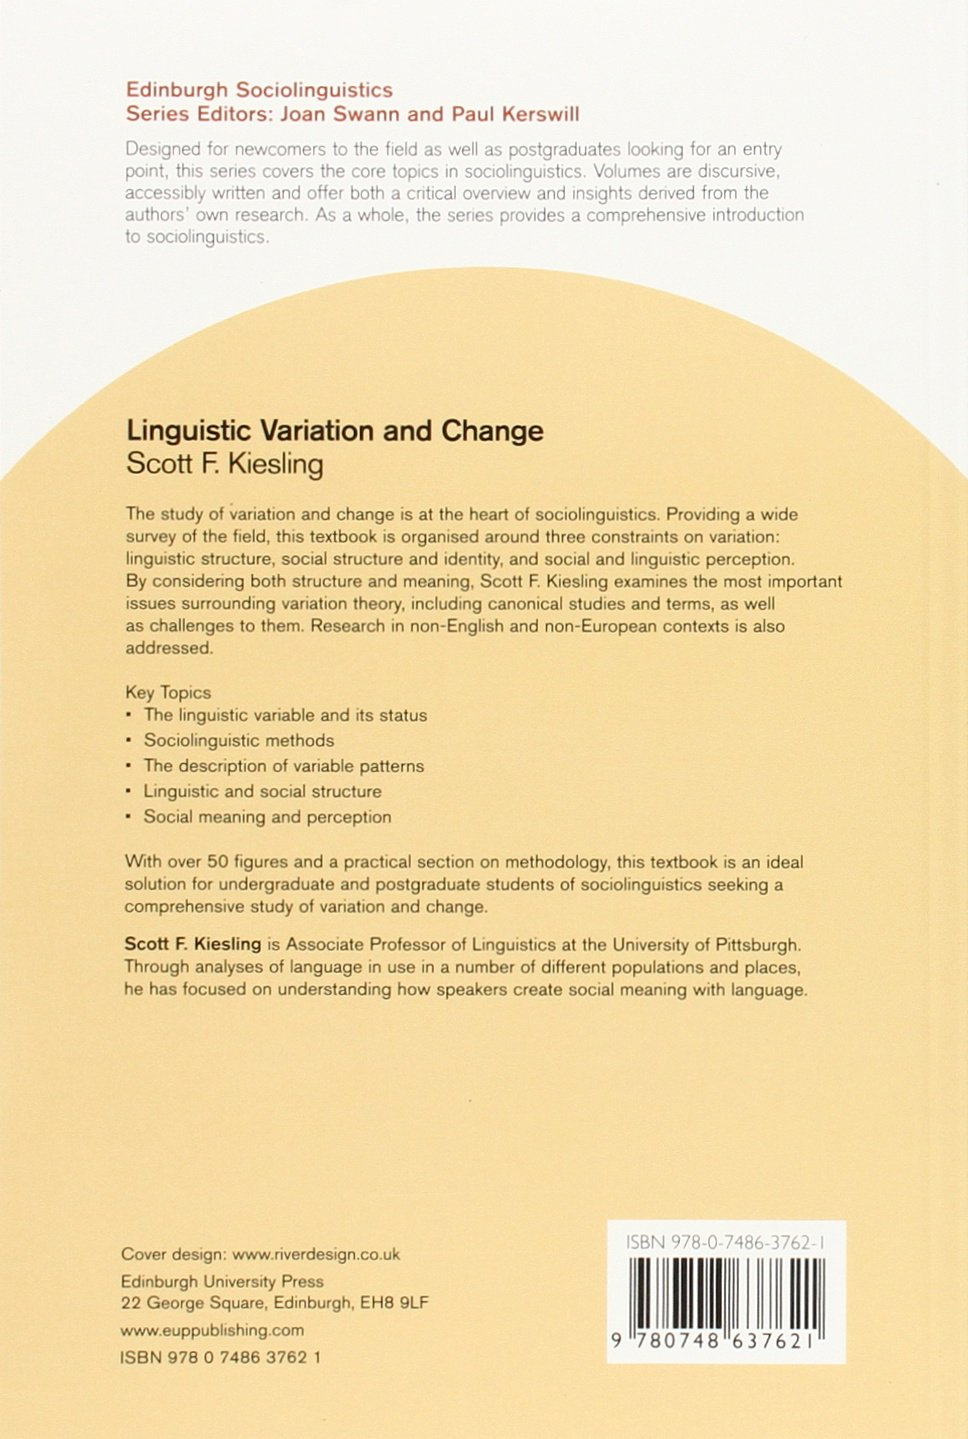 Linguistic Variation and Change Edinburgh Sociolinguistics: Amazon ...